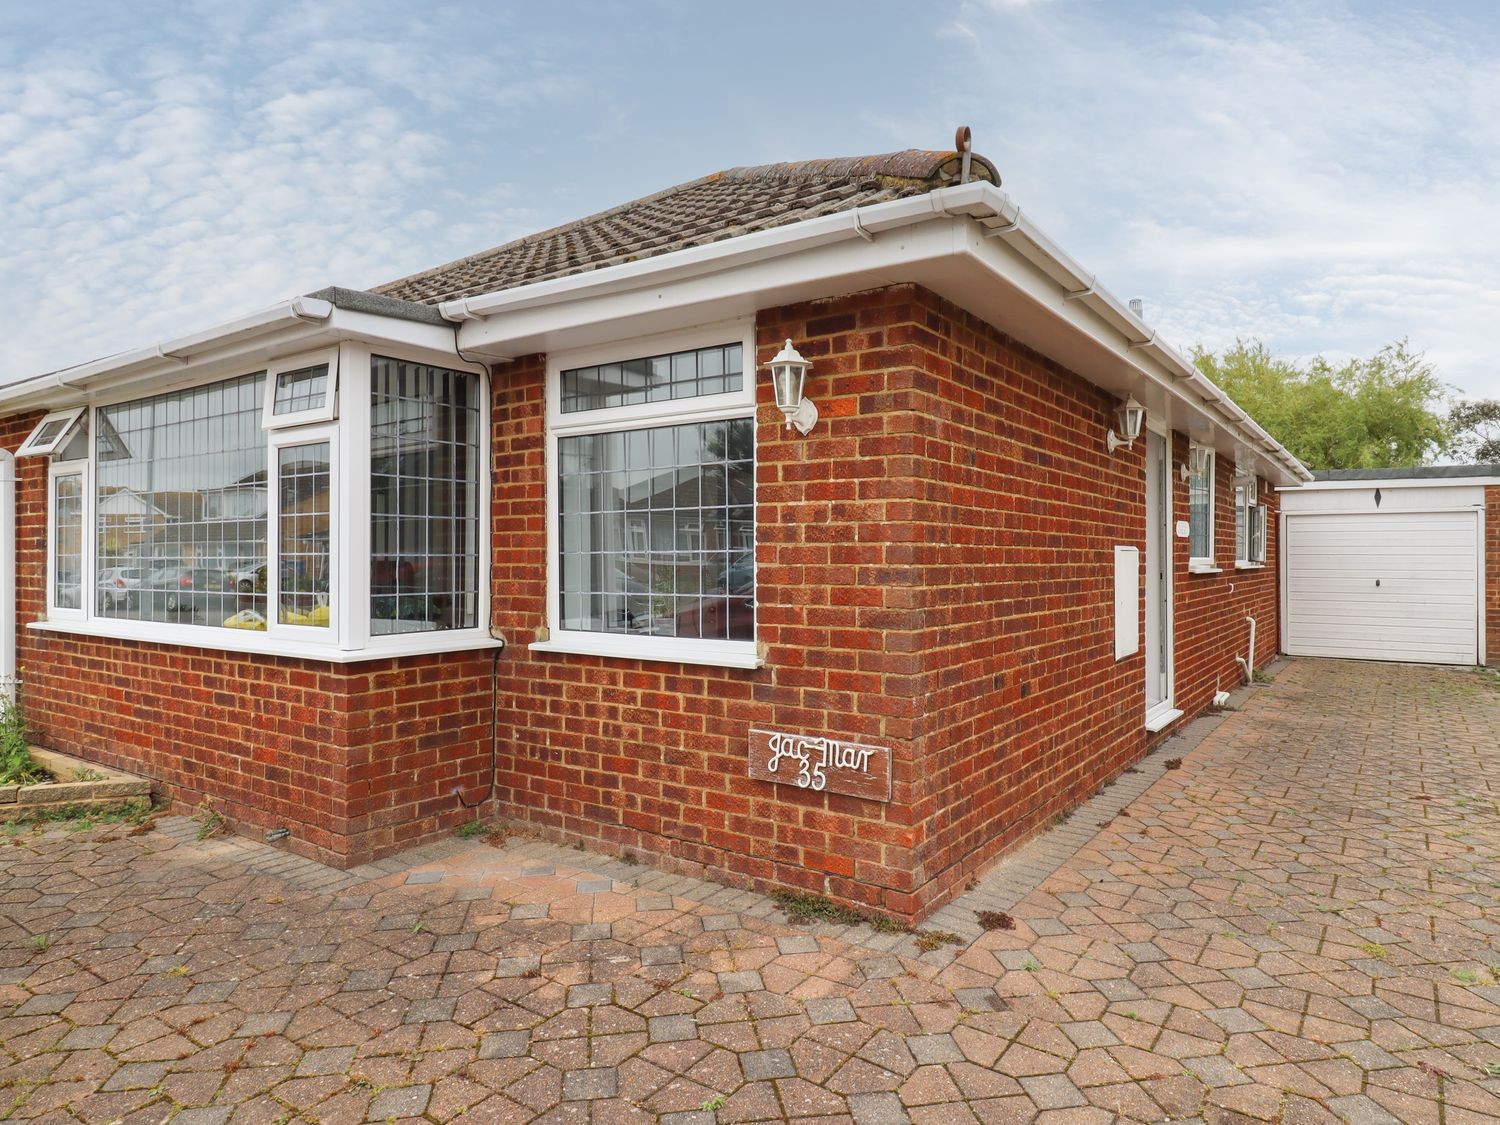 35 Seabourne Way - Kent & Sussex - 1077489 - photo 1